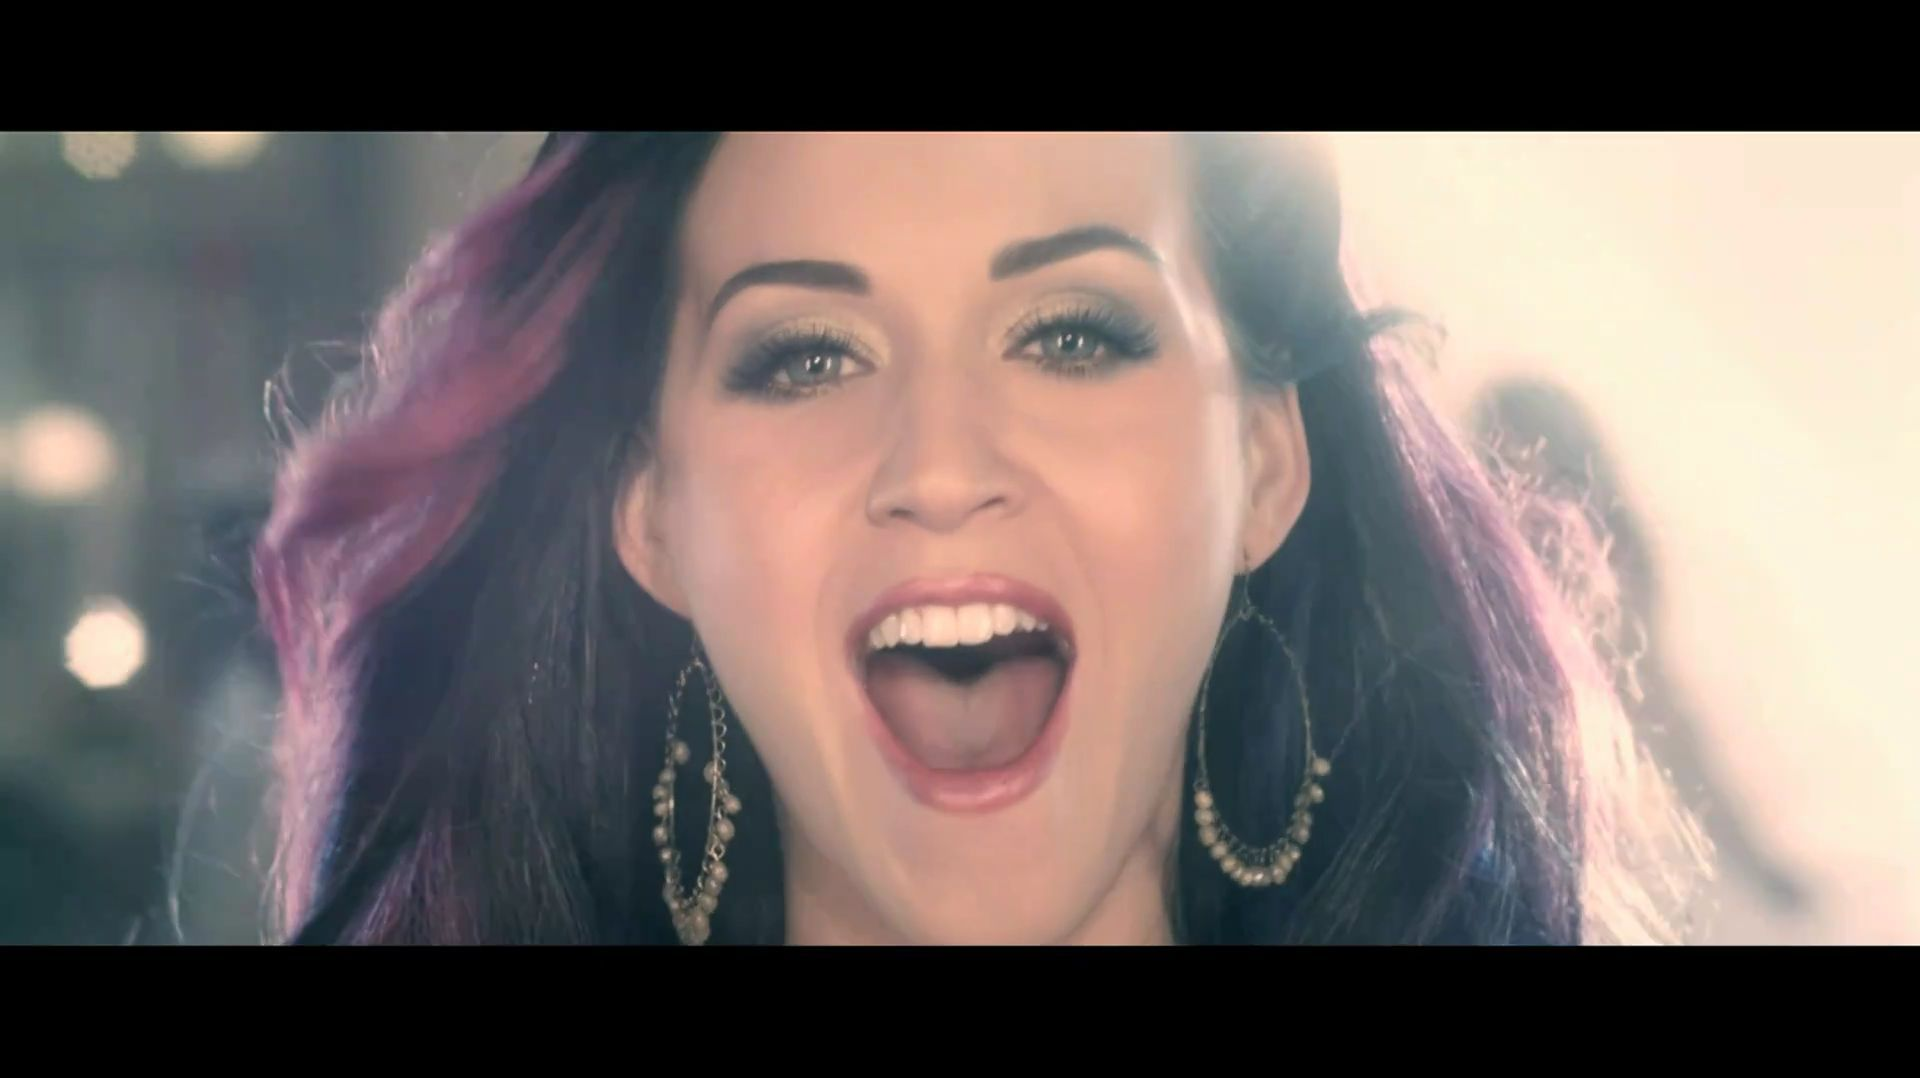 Firework Katy Perry Music Video images Katy Perry Songs